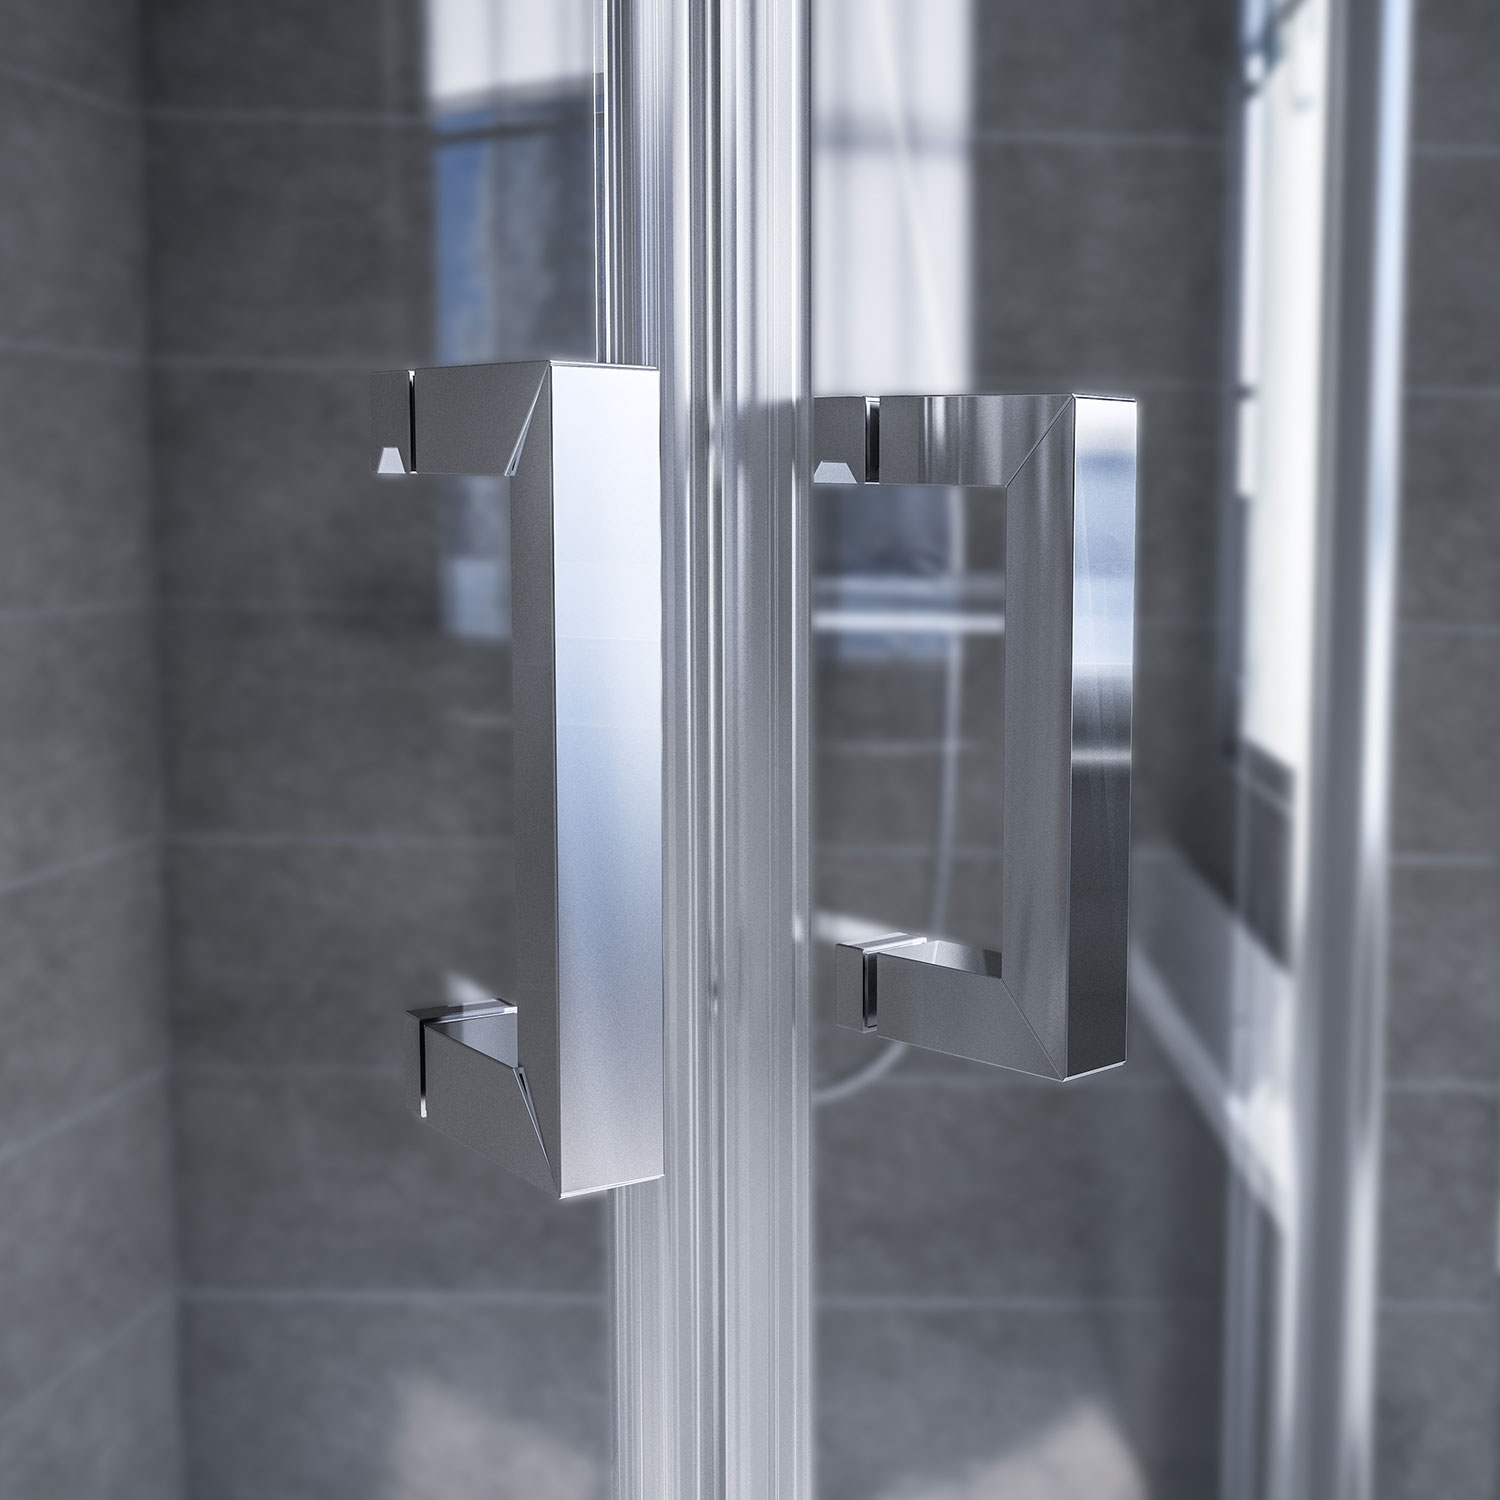 Aqualux AQX 6 Quadrant Shower Enclosure 800mm x 800mm Silver Frame 6mm Glass